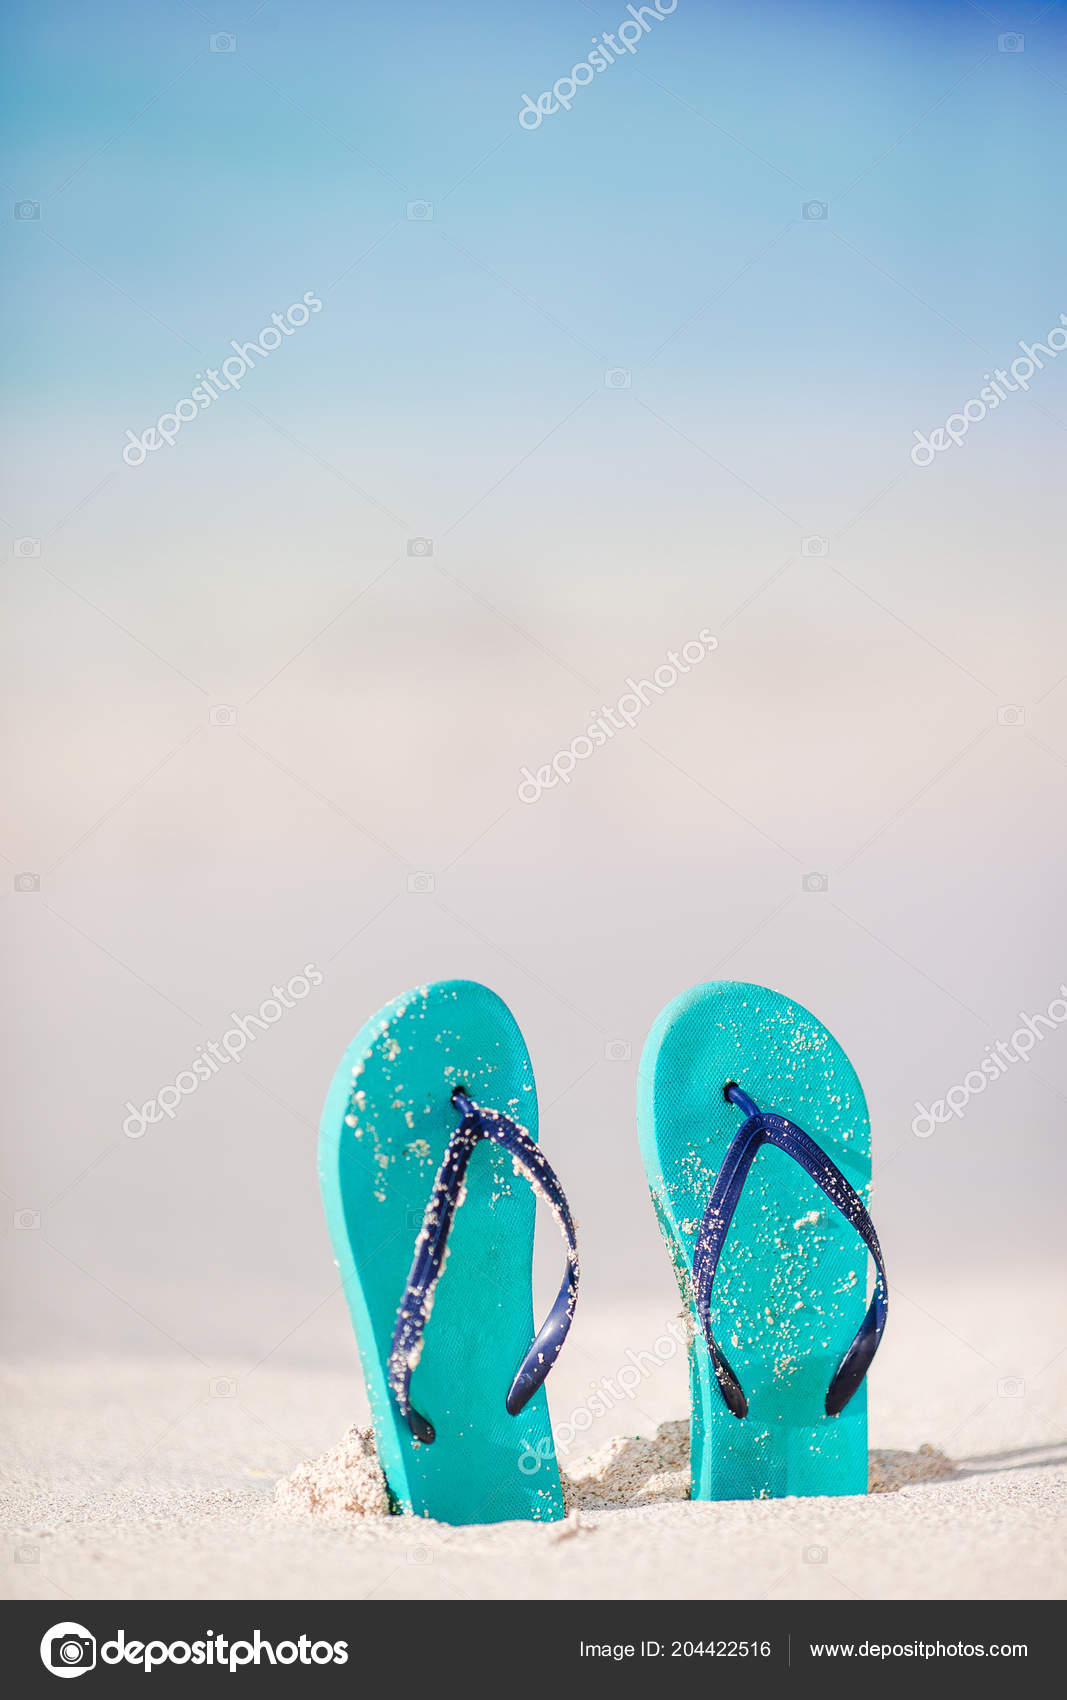 899aa8d62fb1a Summer holiday beach background with flip flops on a tropical beach.  Slippers on a sand with copyspace.